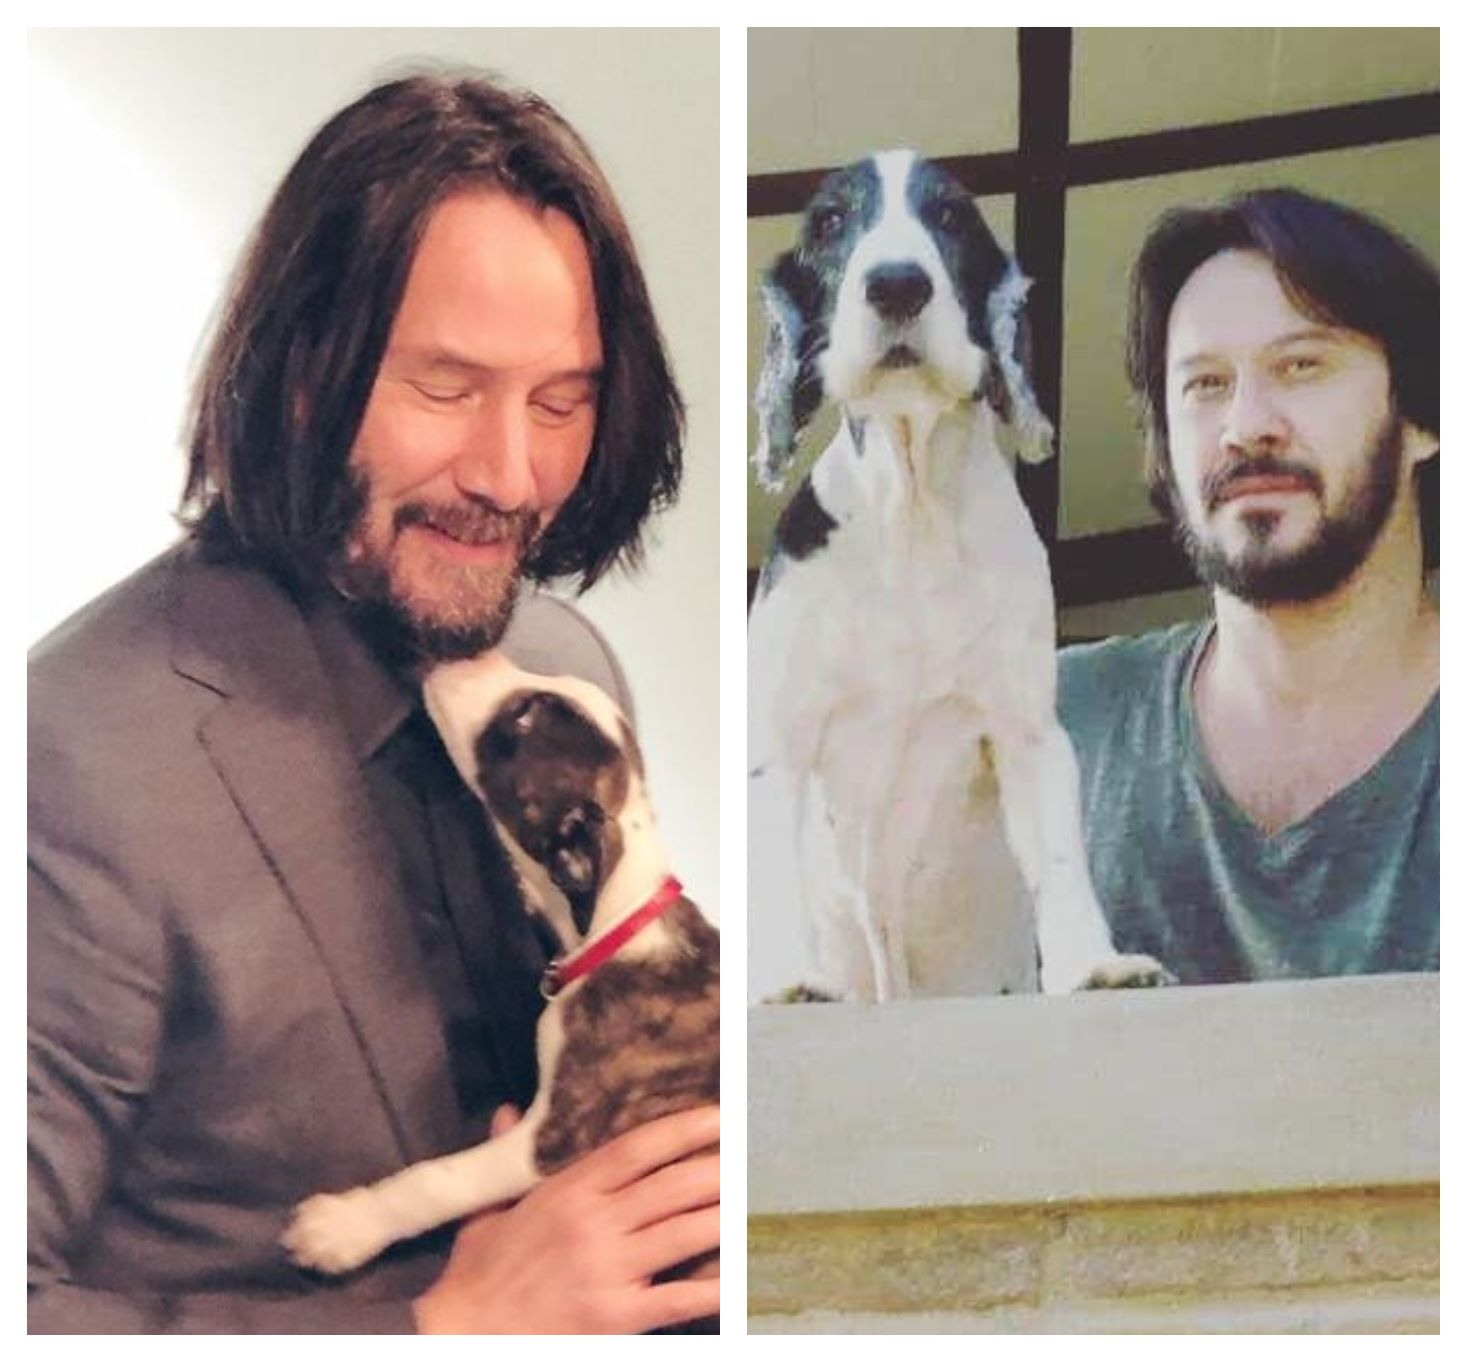 i am single and looking like keanu reeves really helps